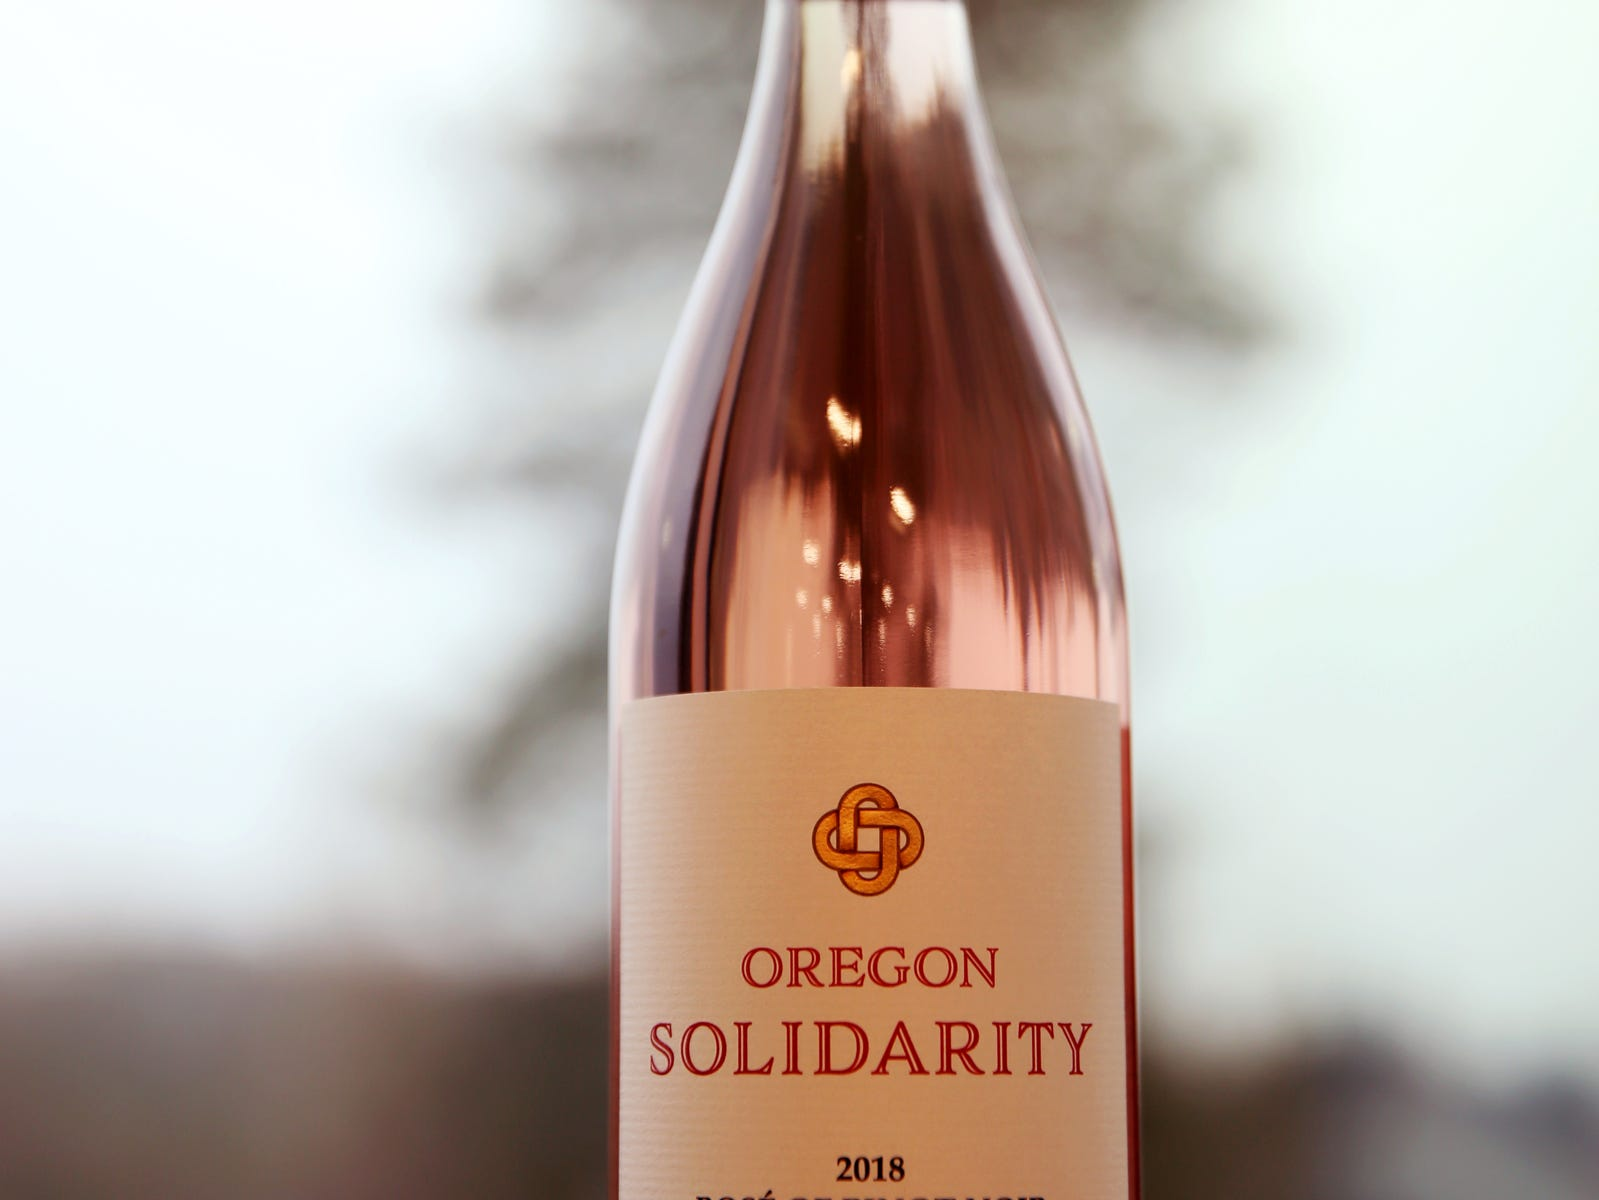 A bottle of Oregon Solidarity wine, created after Oregon wineries teamed up to make wine from Oregon grapes a California winery rejected after wildfires. Photographed at at the Statesman Journal in Salem on Friday, Feb. 8, 2019.